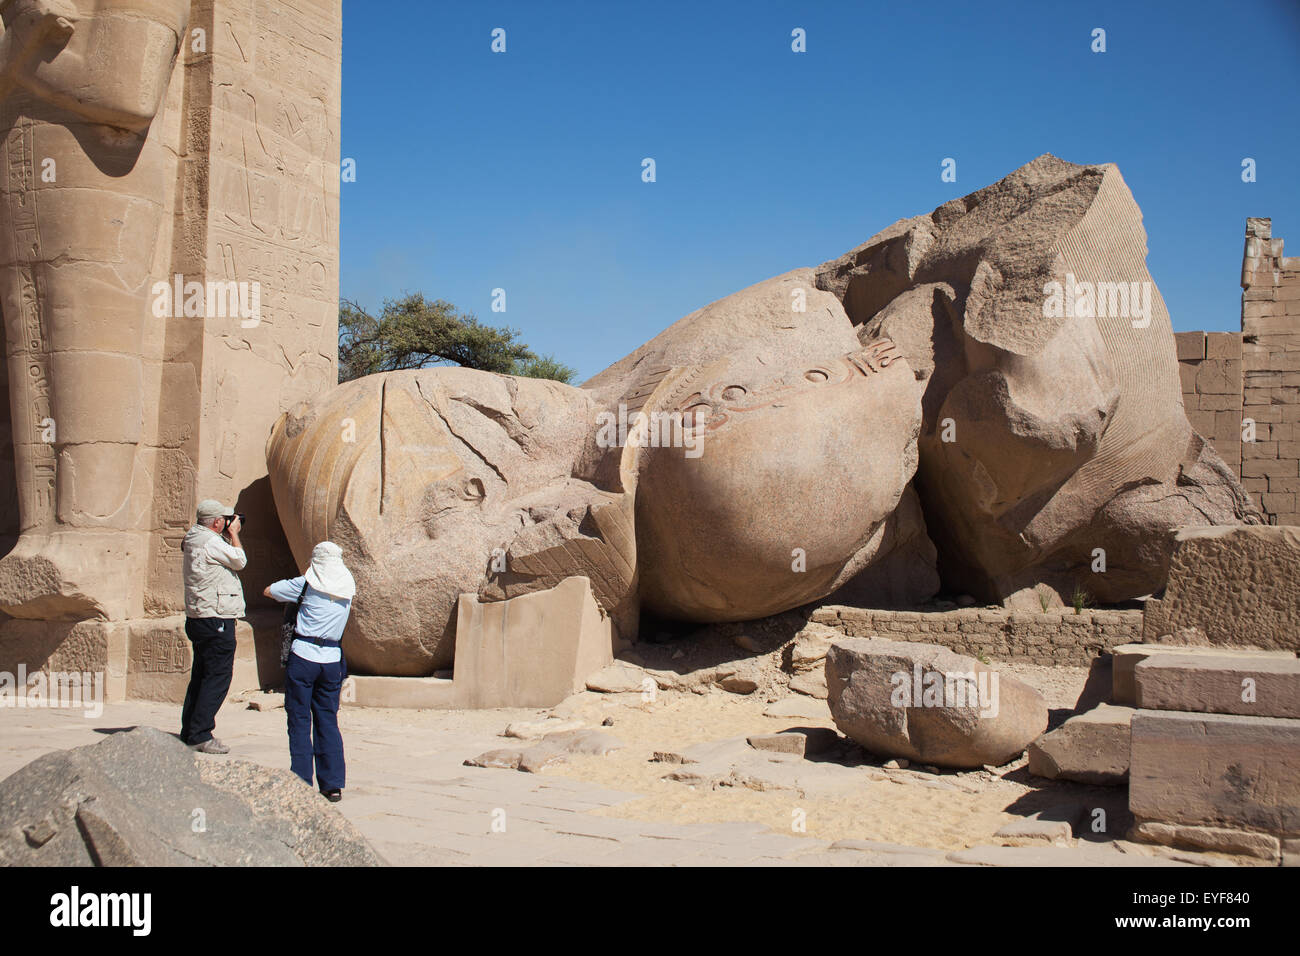 an analysis of the broken statue of ozymandias in egypt Ozymandias by percy bysshe shelley including his arrogance in his claim on his statue, my name is ozymandias  and a broken and decaying statue is all that.